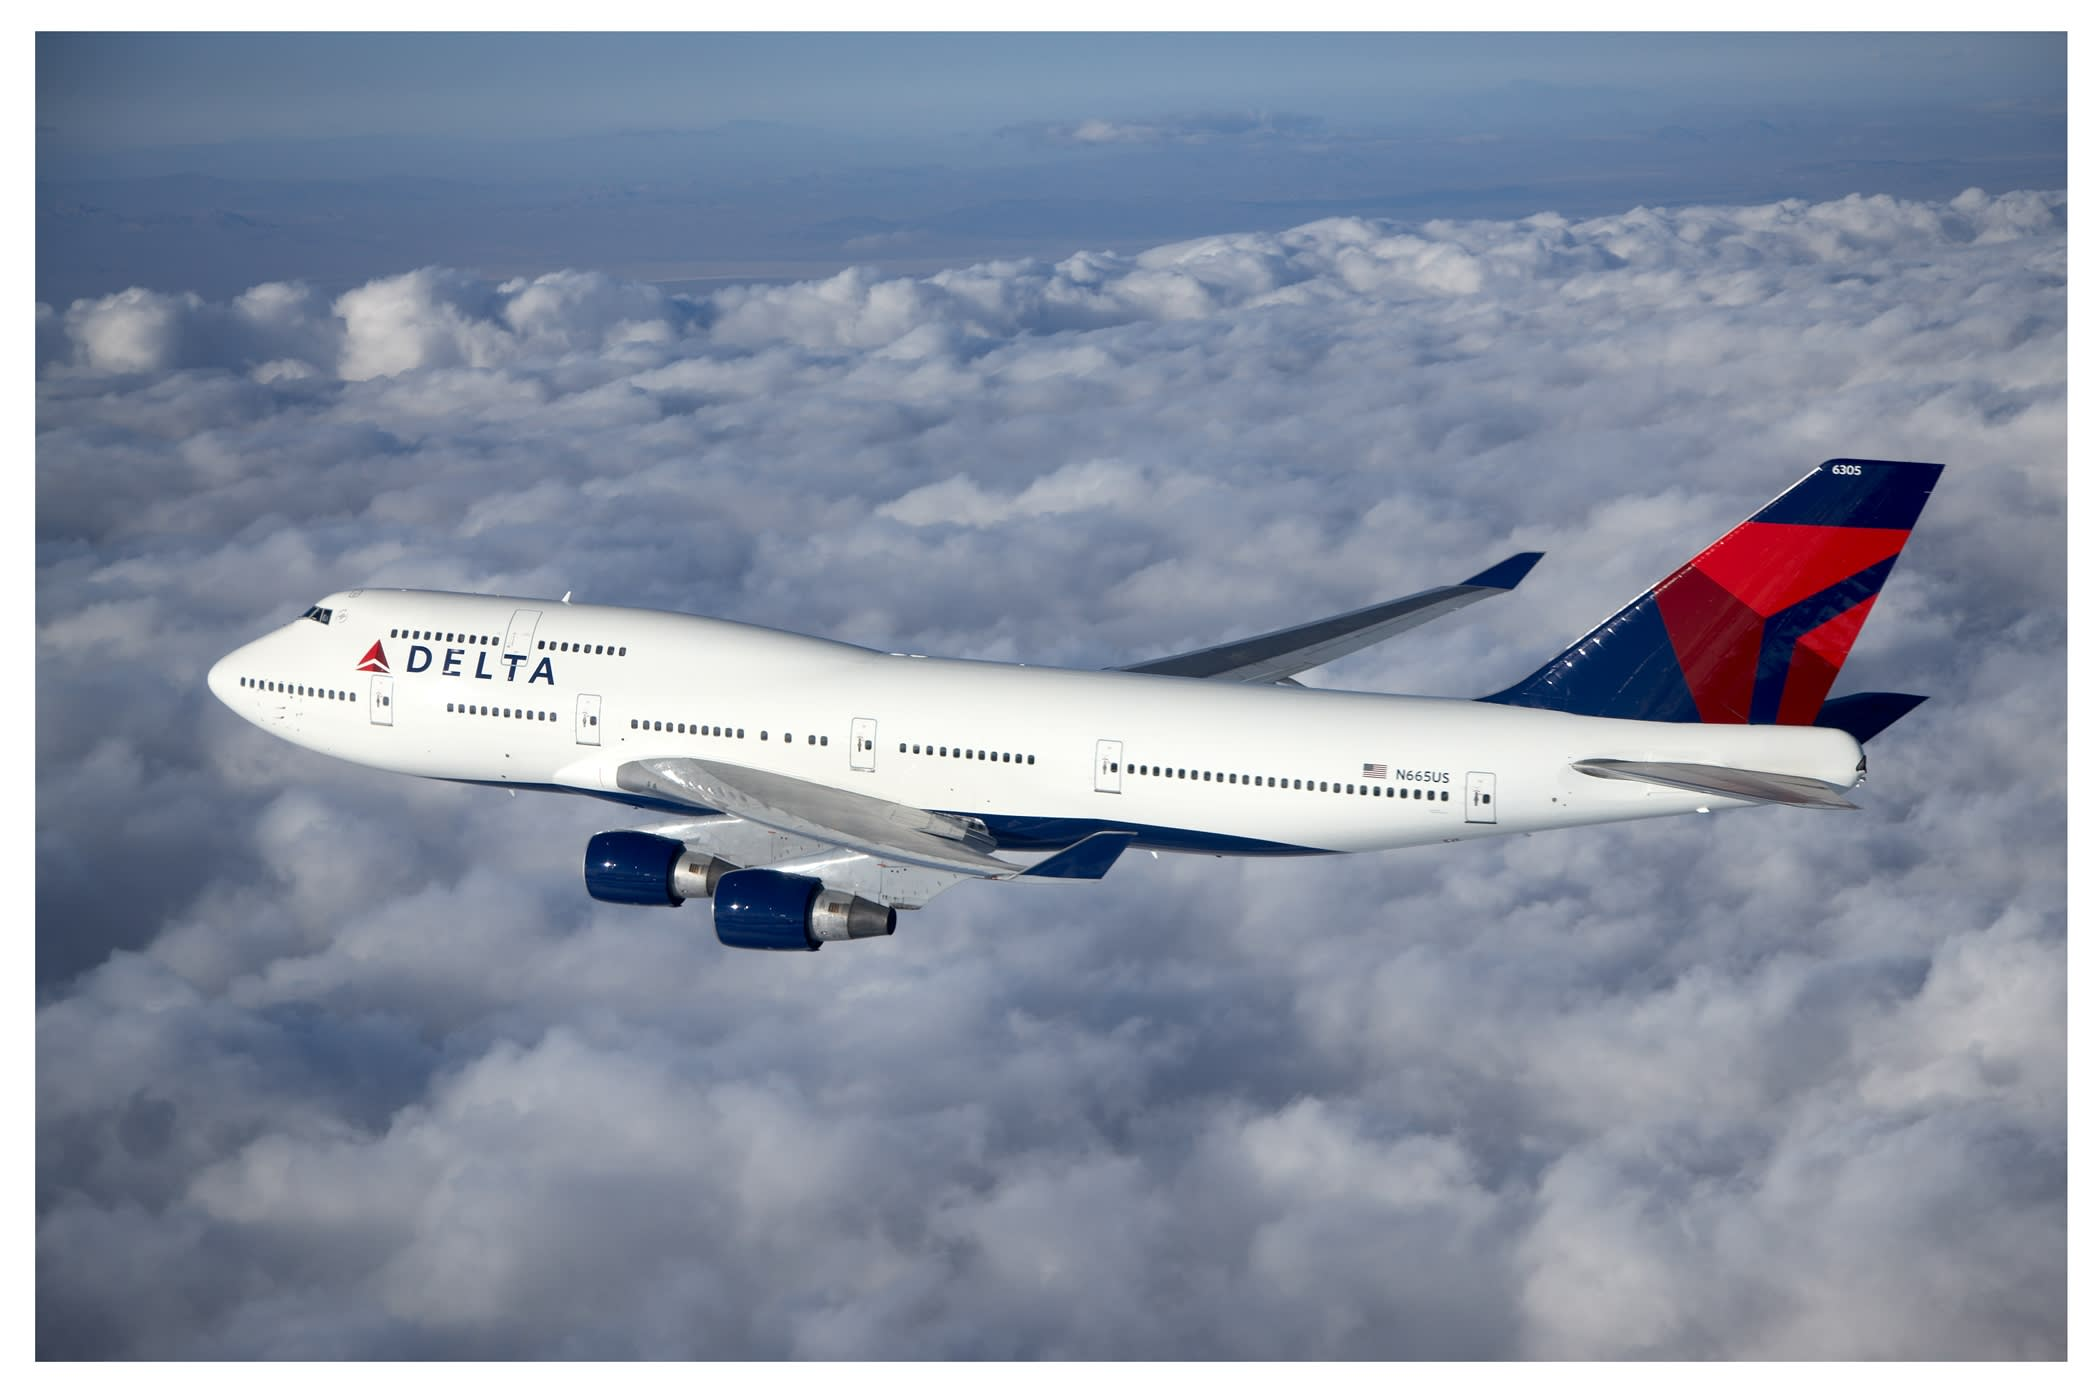 A decade after Delta\'s Northwest merger upended the airline industry